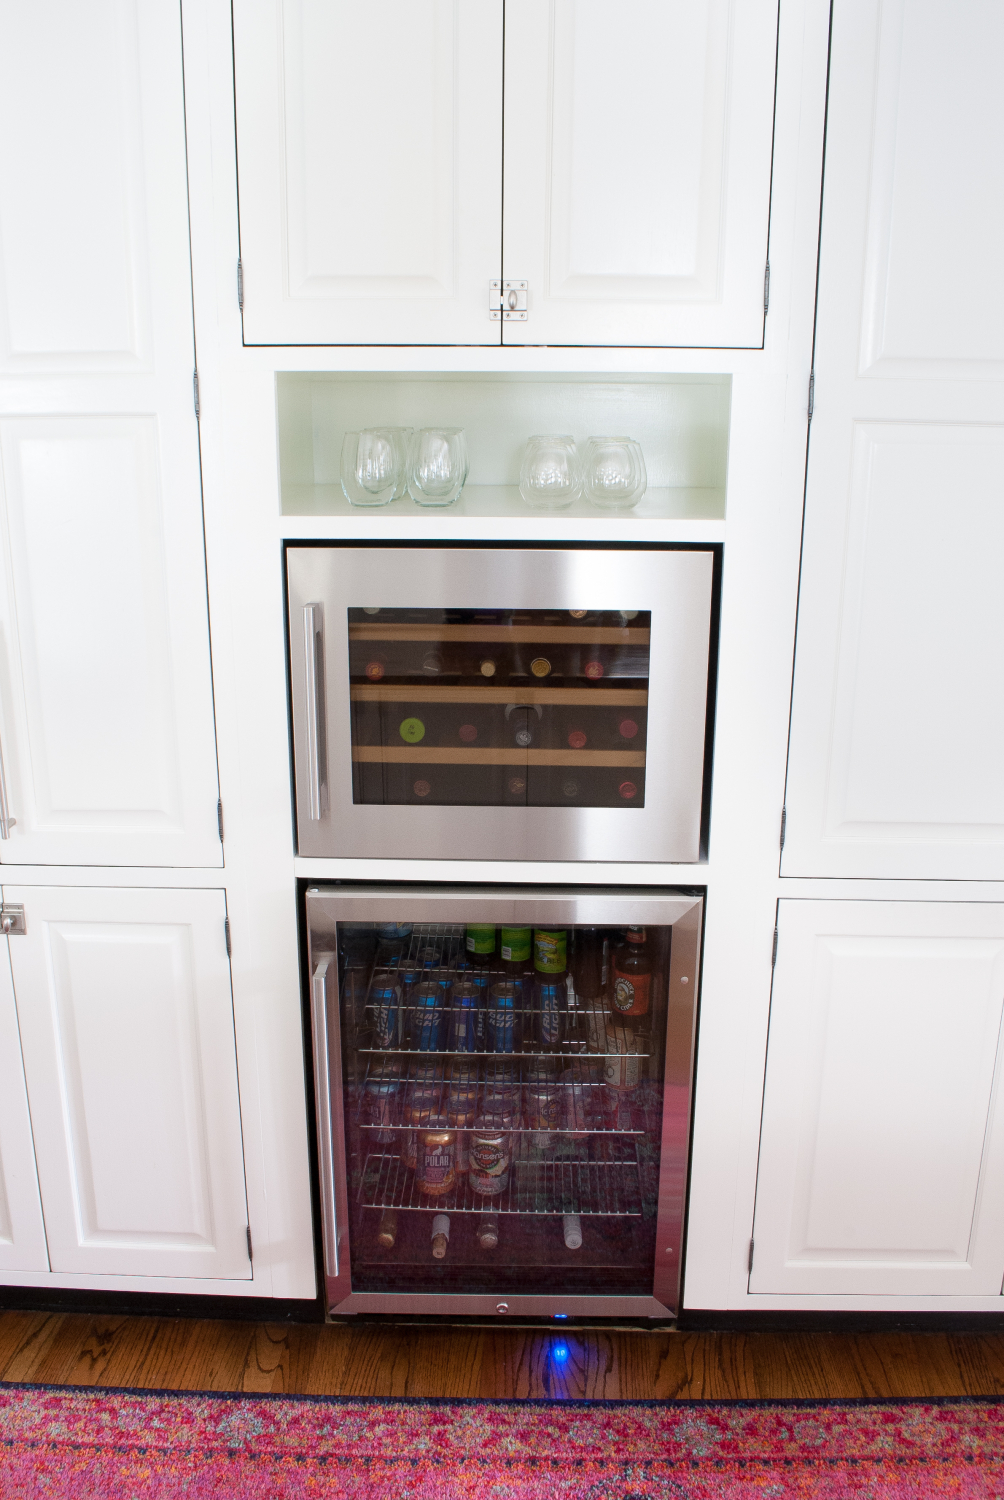 How to add a built in wine fridge and beverage fridge to existing cabinetry - it's simpler than you might think and adds great extra cold storage!